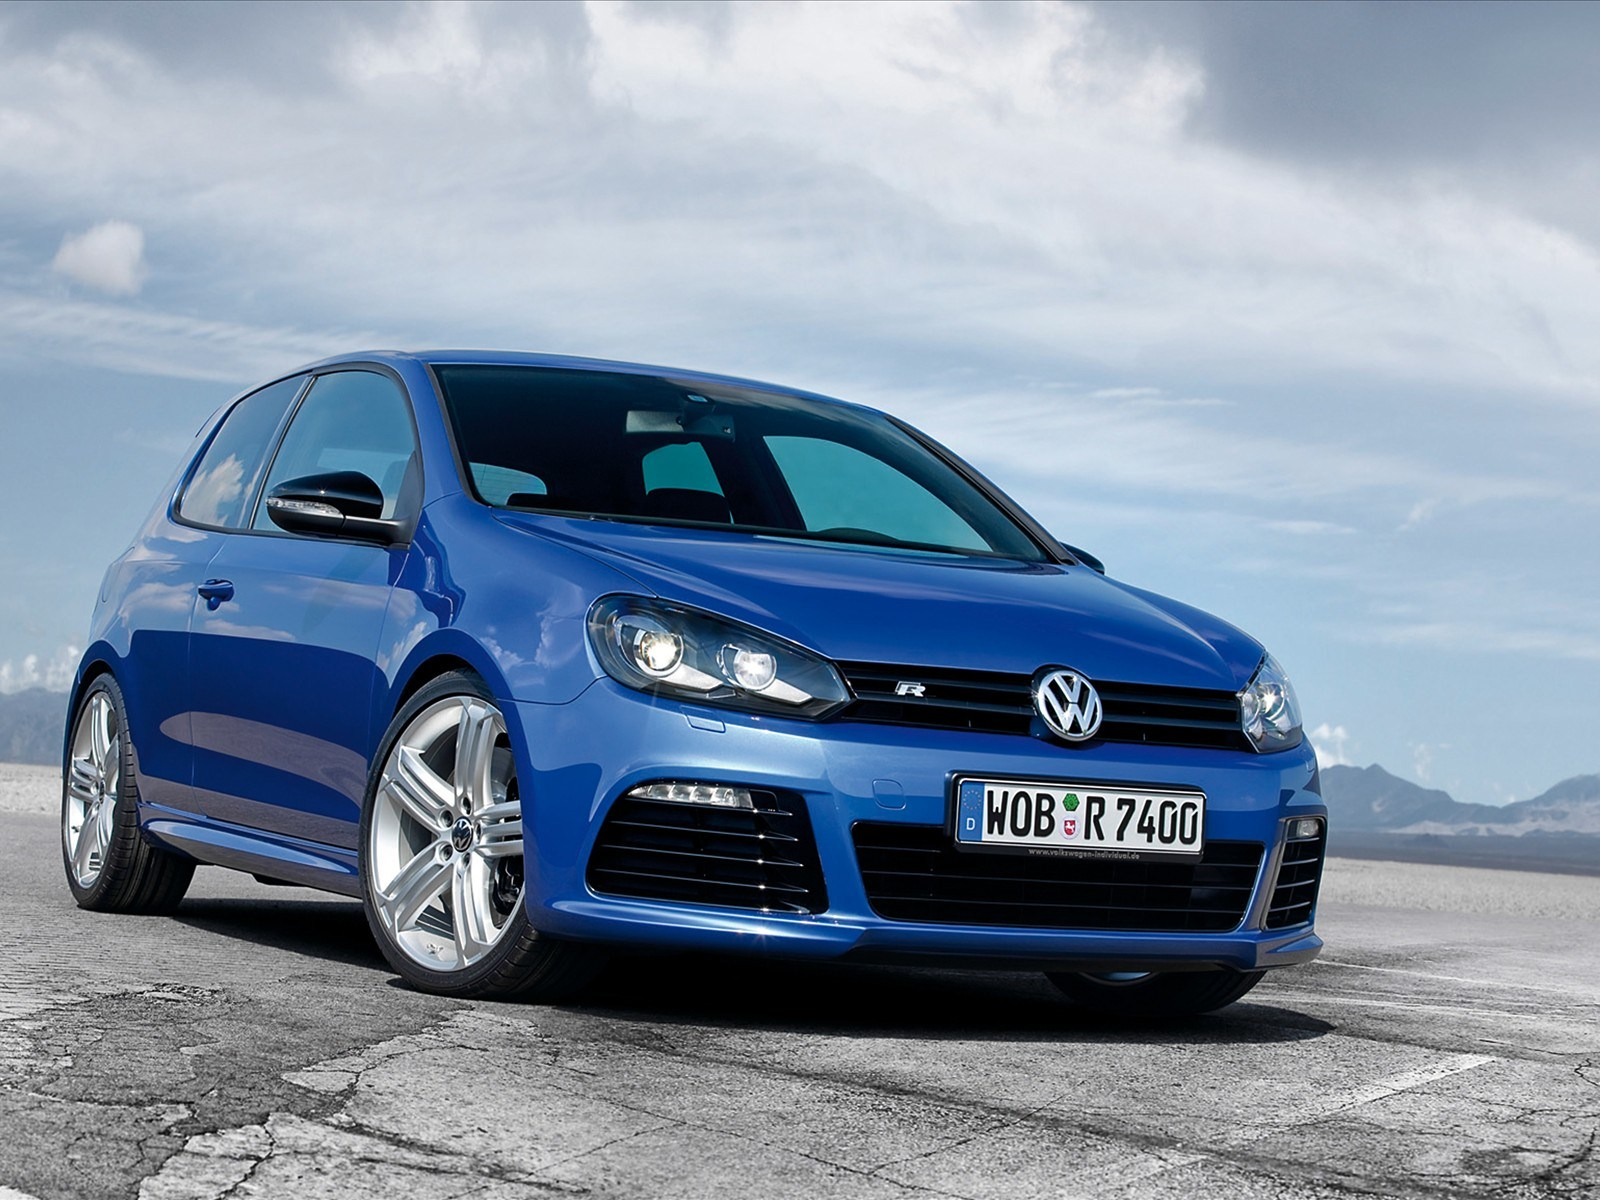 2015 volkswagen golf r wallpapers car wallpaper collections gallery view. Black Bedroom Furniture Sets. Home Design Ideas